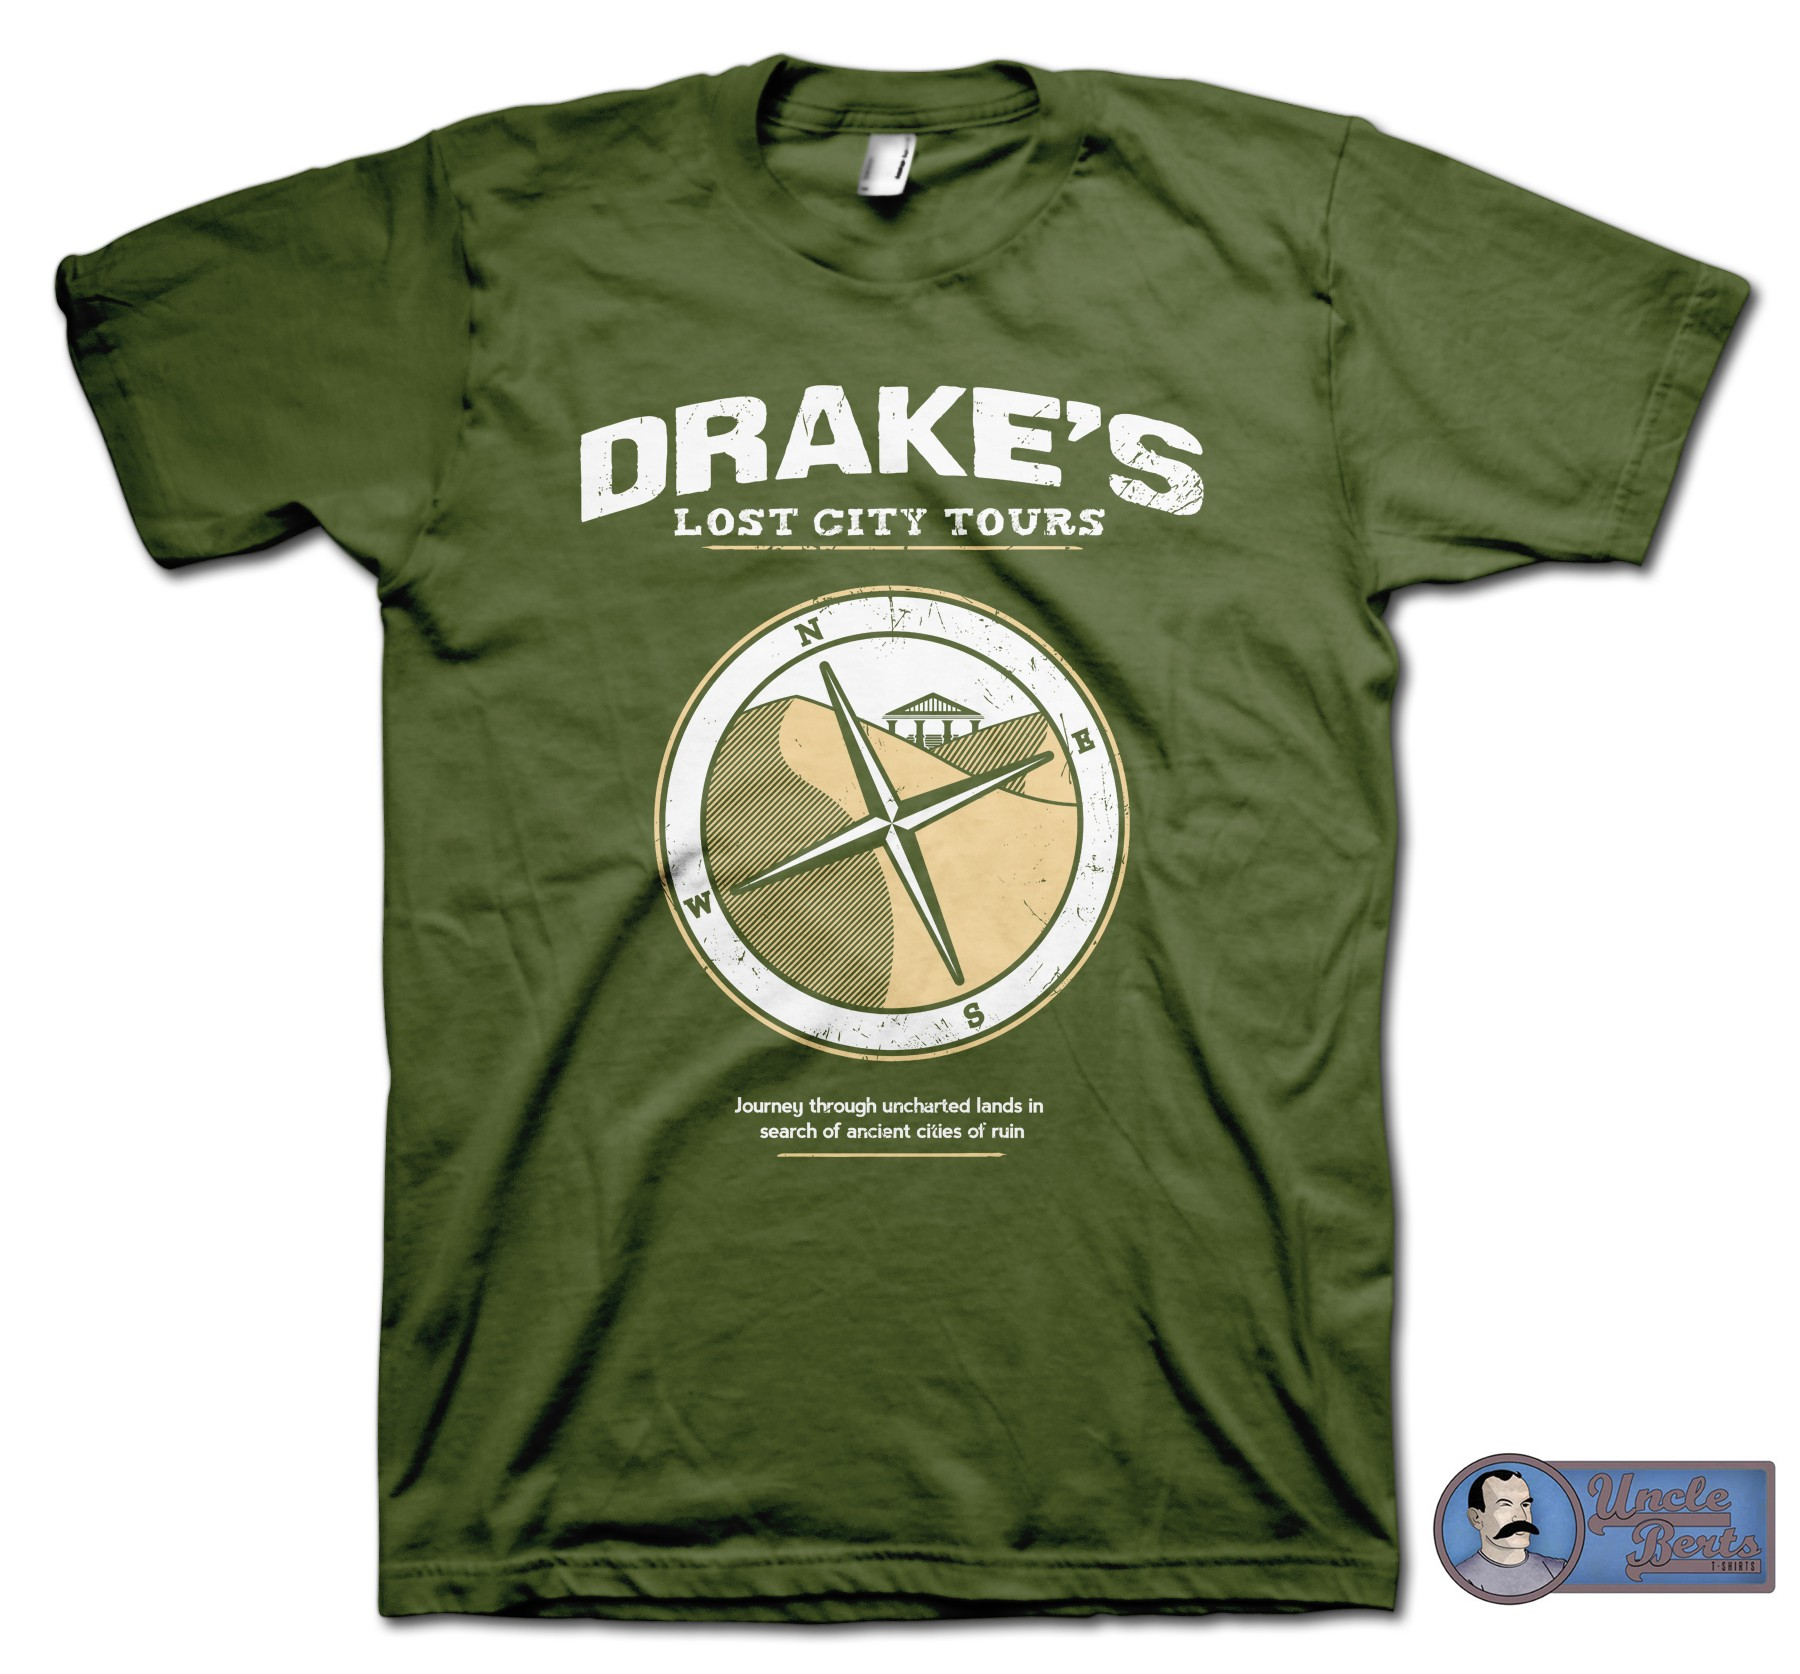 Drake's Lost City Tours T-Shirt - inspired by the Uncharted series